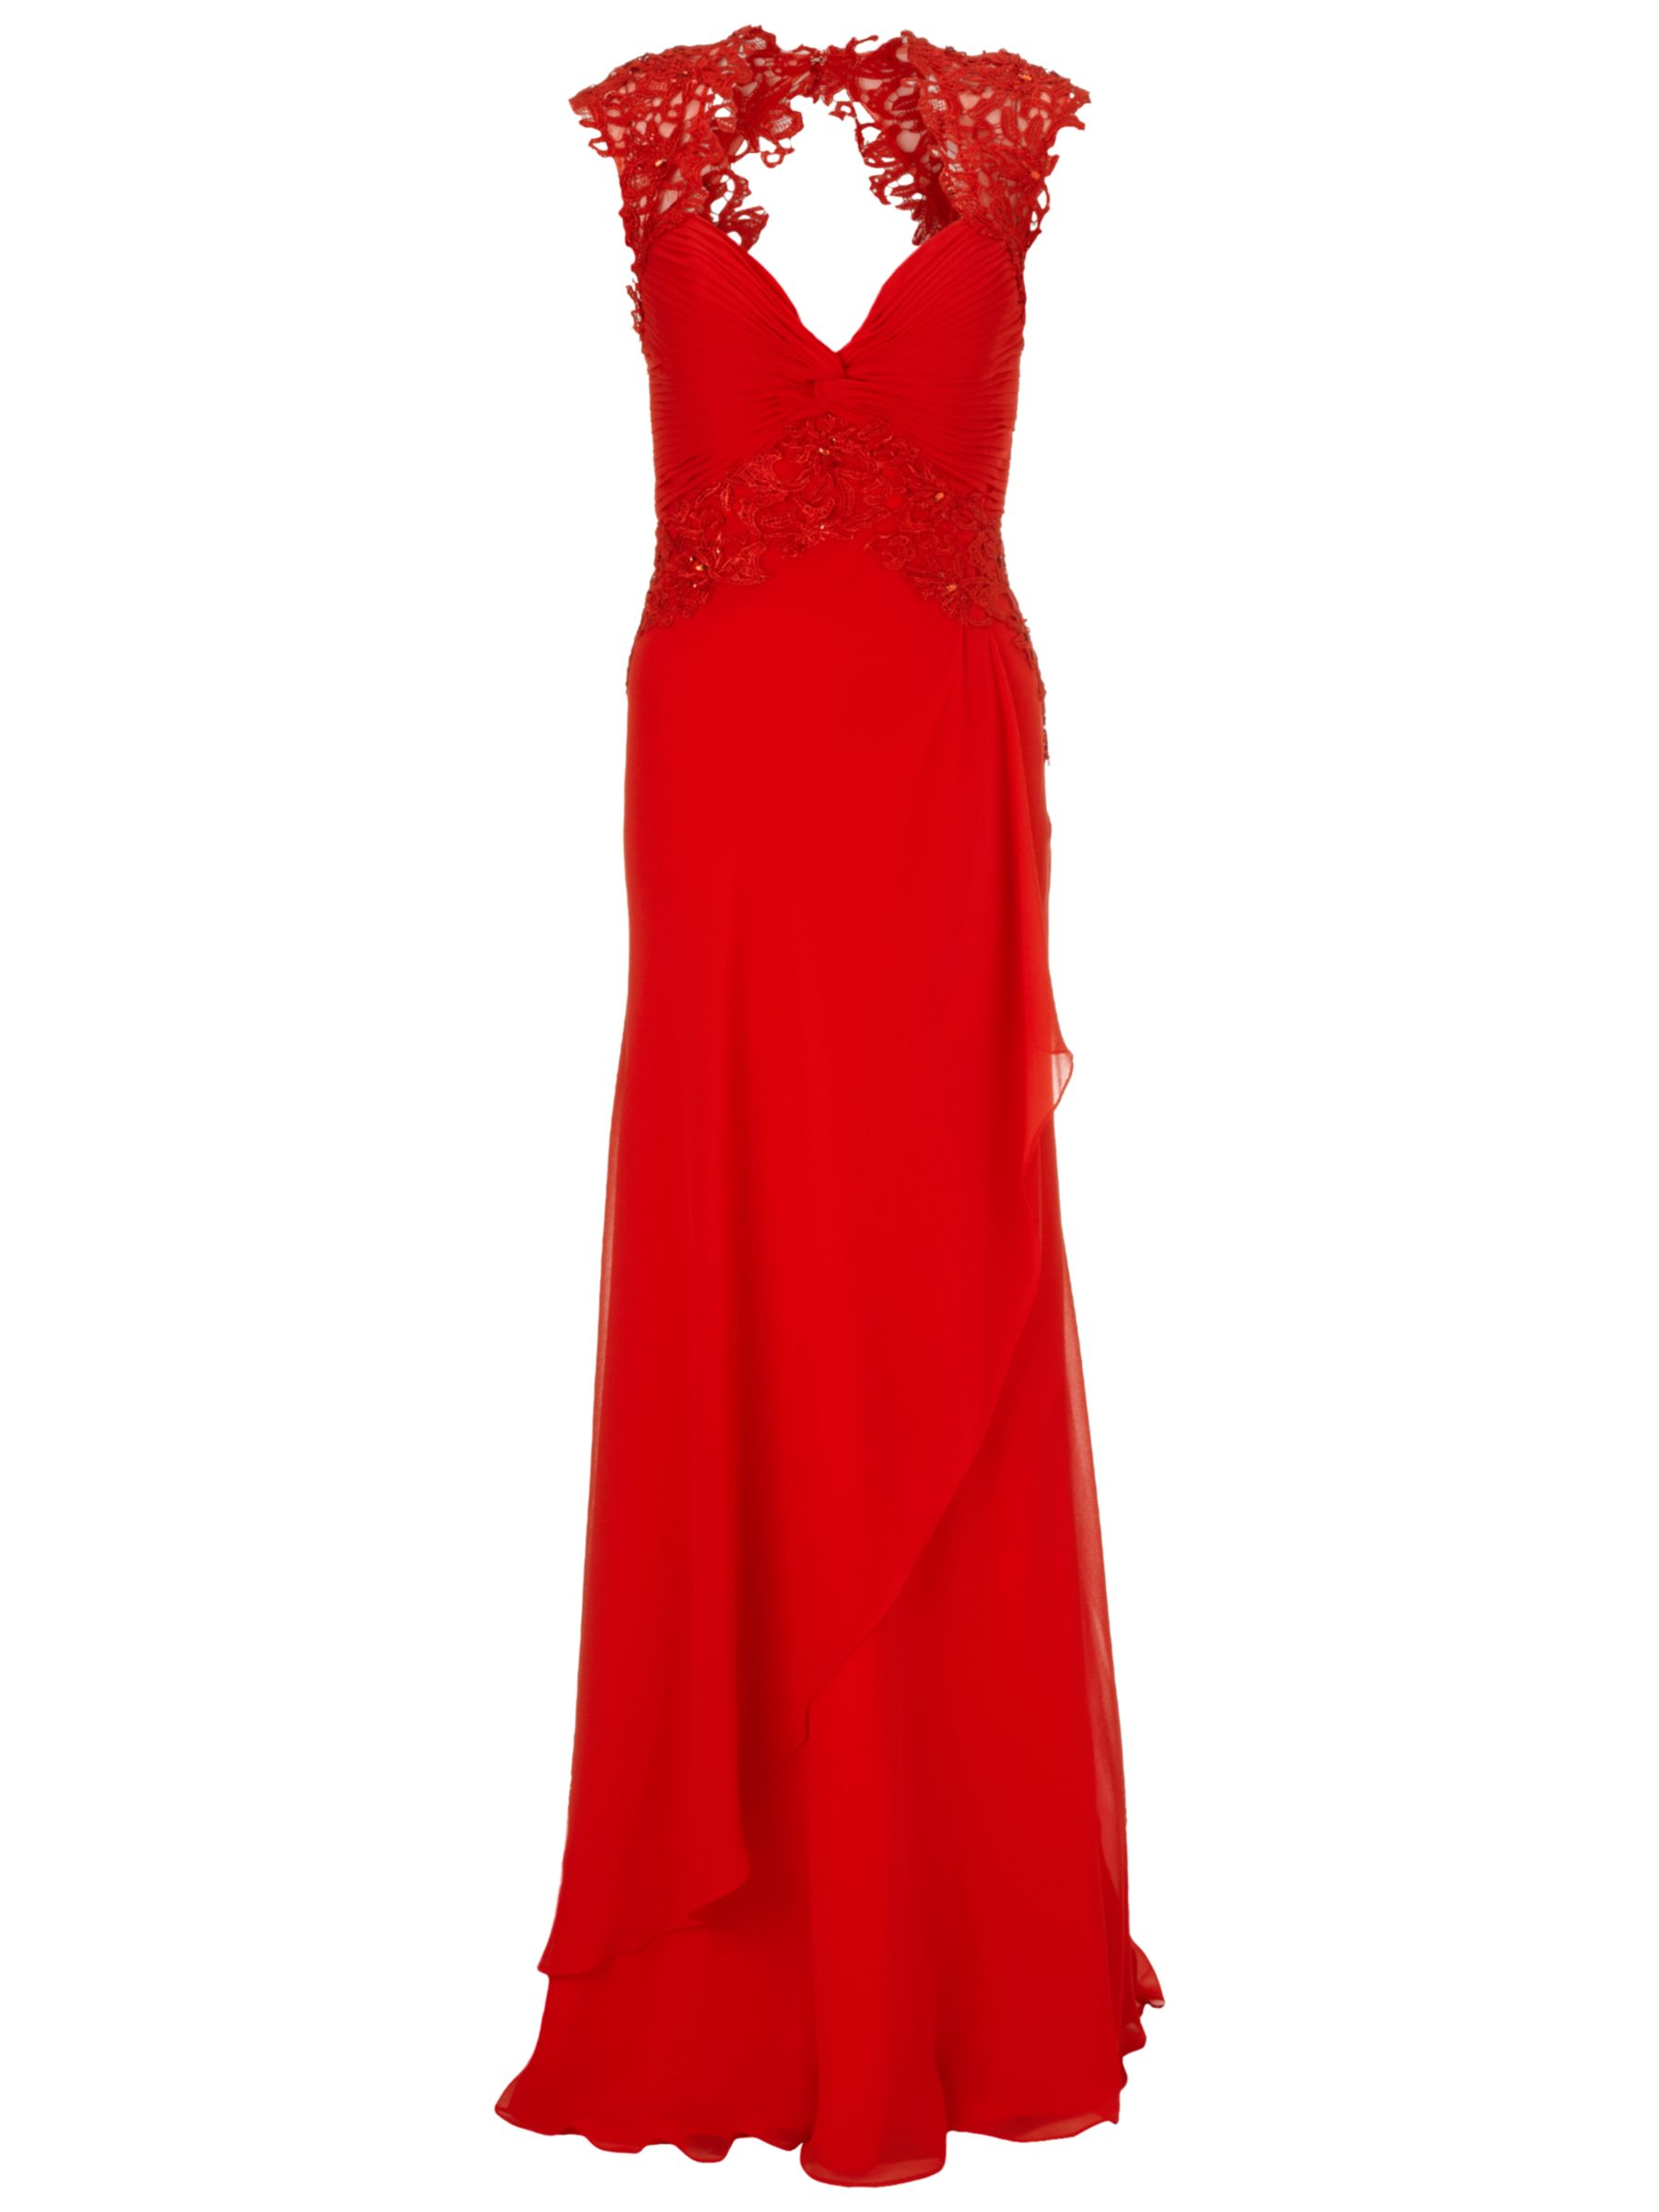 Gina Bacconi Long Chiffon Lace Detail Dress, Red